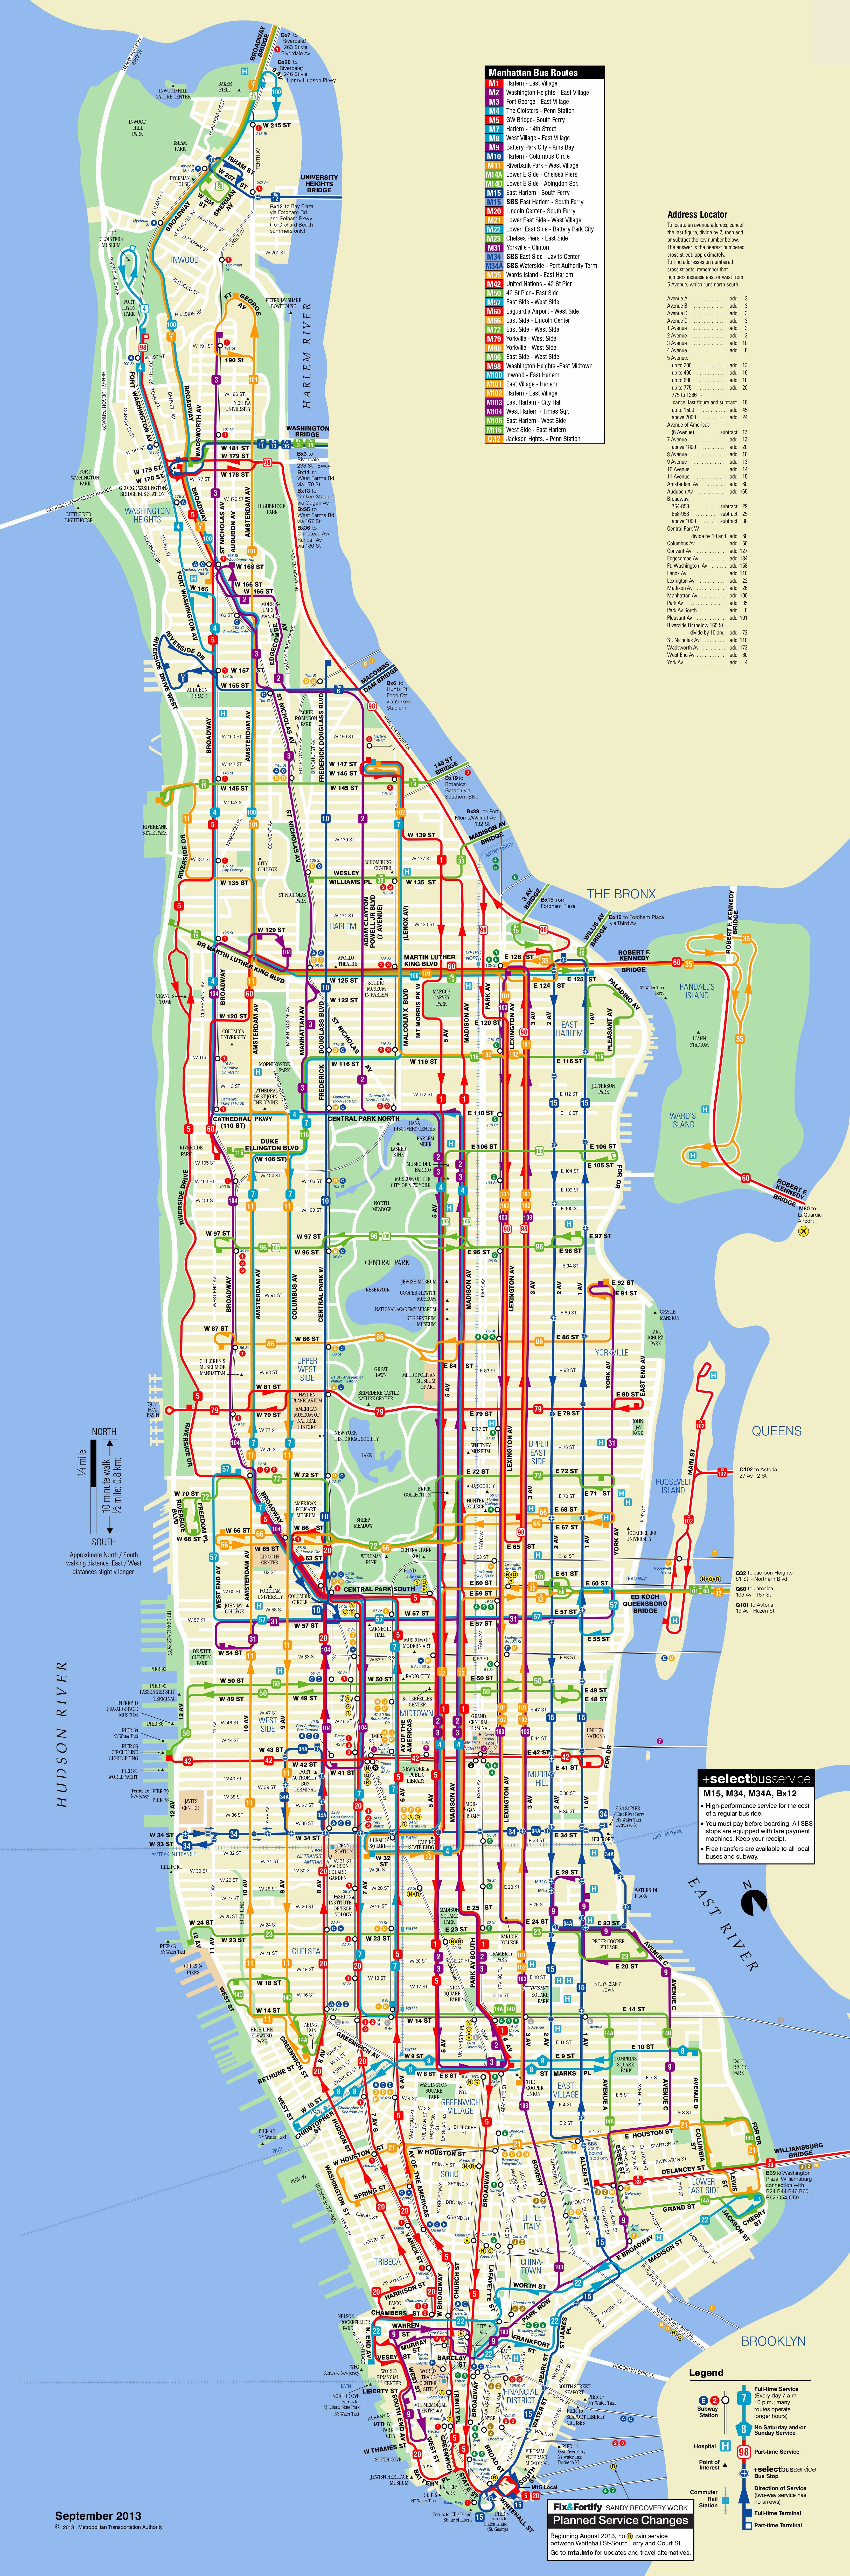 Large scaled detailed bus routes map of Manhattan NYC ... on map layout, map distortion, grid reference, geographic information system, map of united states of america, map of florida, contour line, geographic coordinate system, linear scale, map of australia with cities, universal transverse mercator coordinate system, map of va, map grid, map distance, aerial photography, map legend, map symbols, compass rose, map key, map projection, map series, map area, map of texas, map skills, history of cartography, cartographic relief depiction, map tools, map boundaries, map features, spatial analysis, map region,